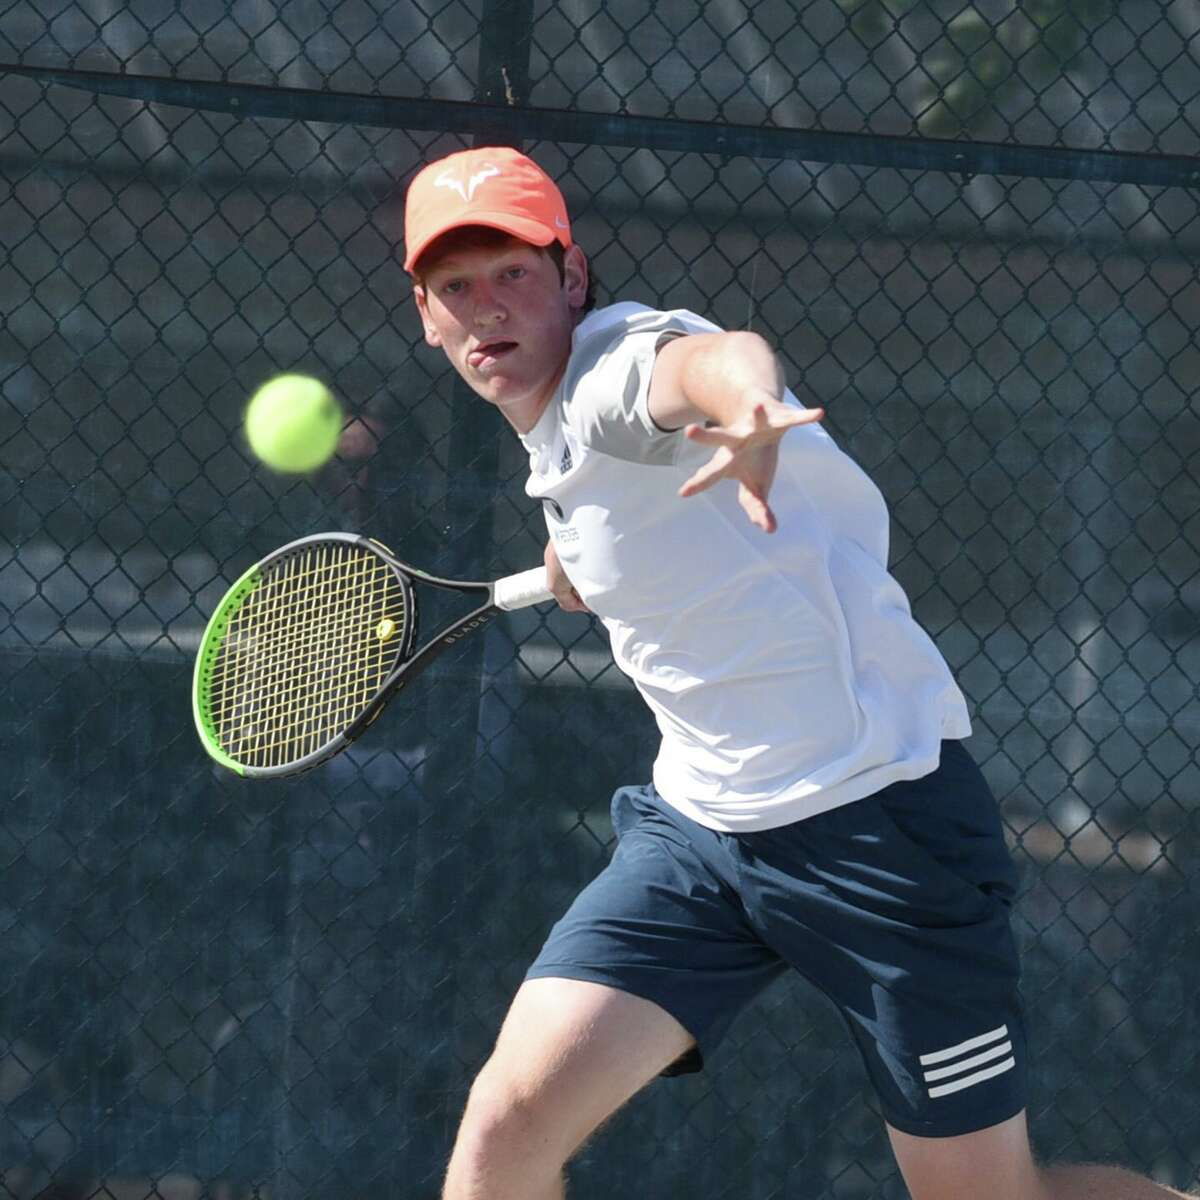 Staples' Tighe Brunetti lines up a shot against Darien's Chris Calderwood at No. 1 singles during the FCIAC tennis final Tuesday in Wilton.